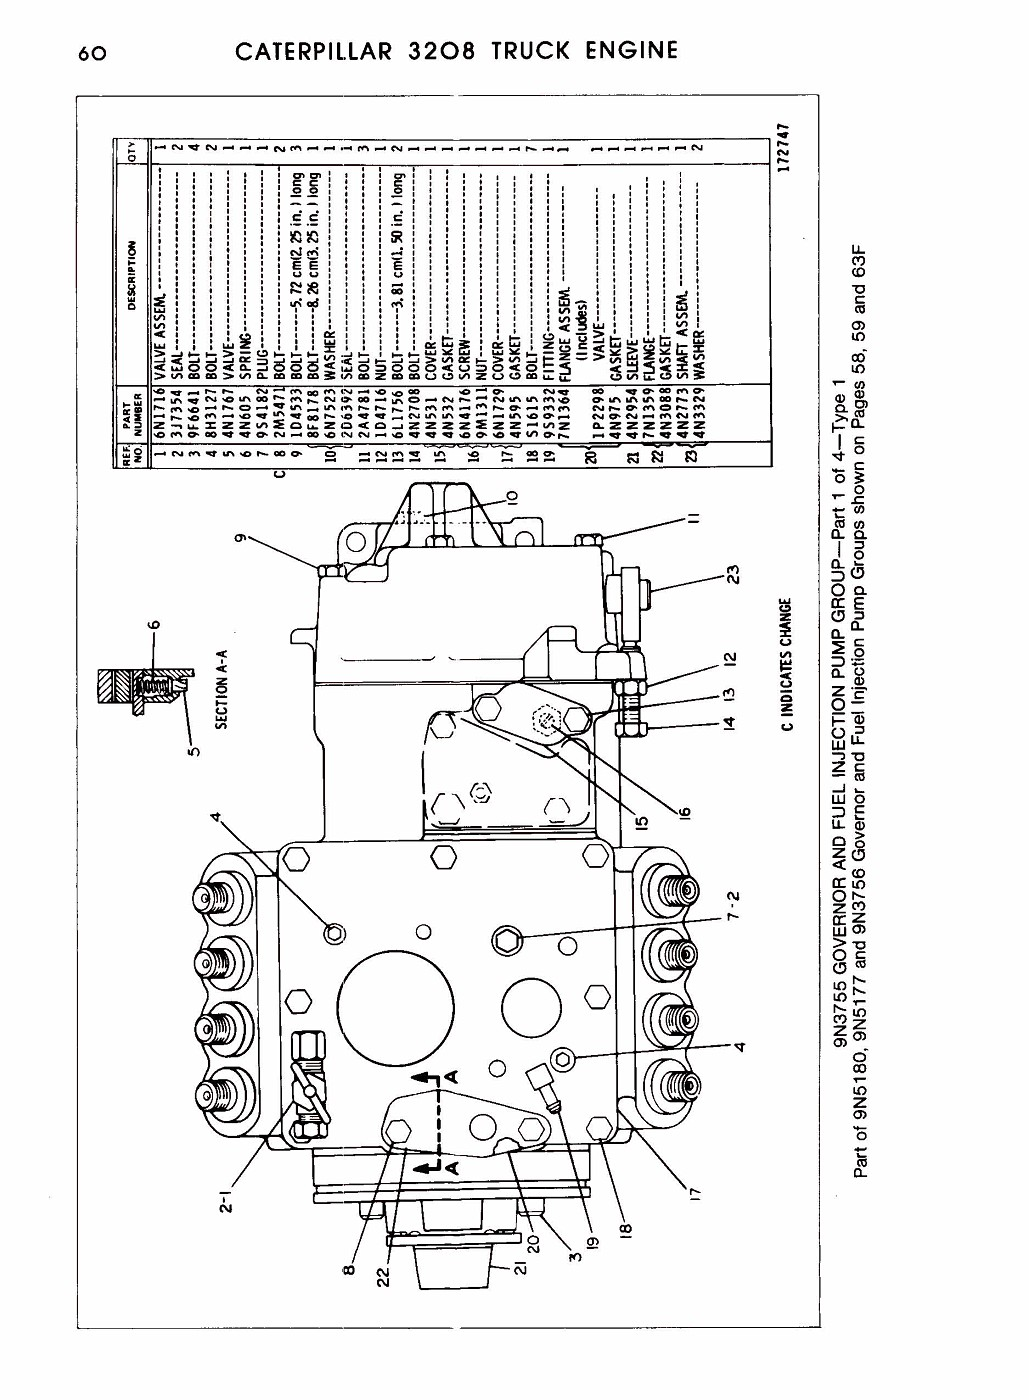 caterpillar c9 ecm wiring diagram caterpillar clutch